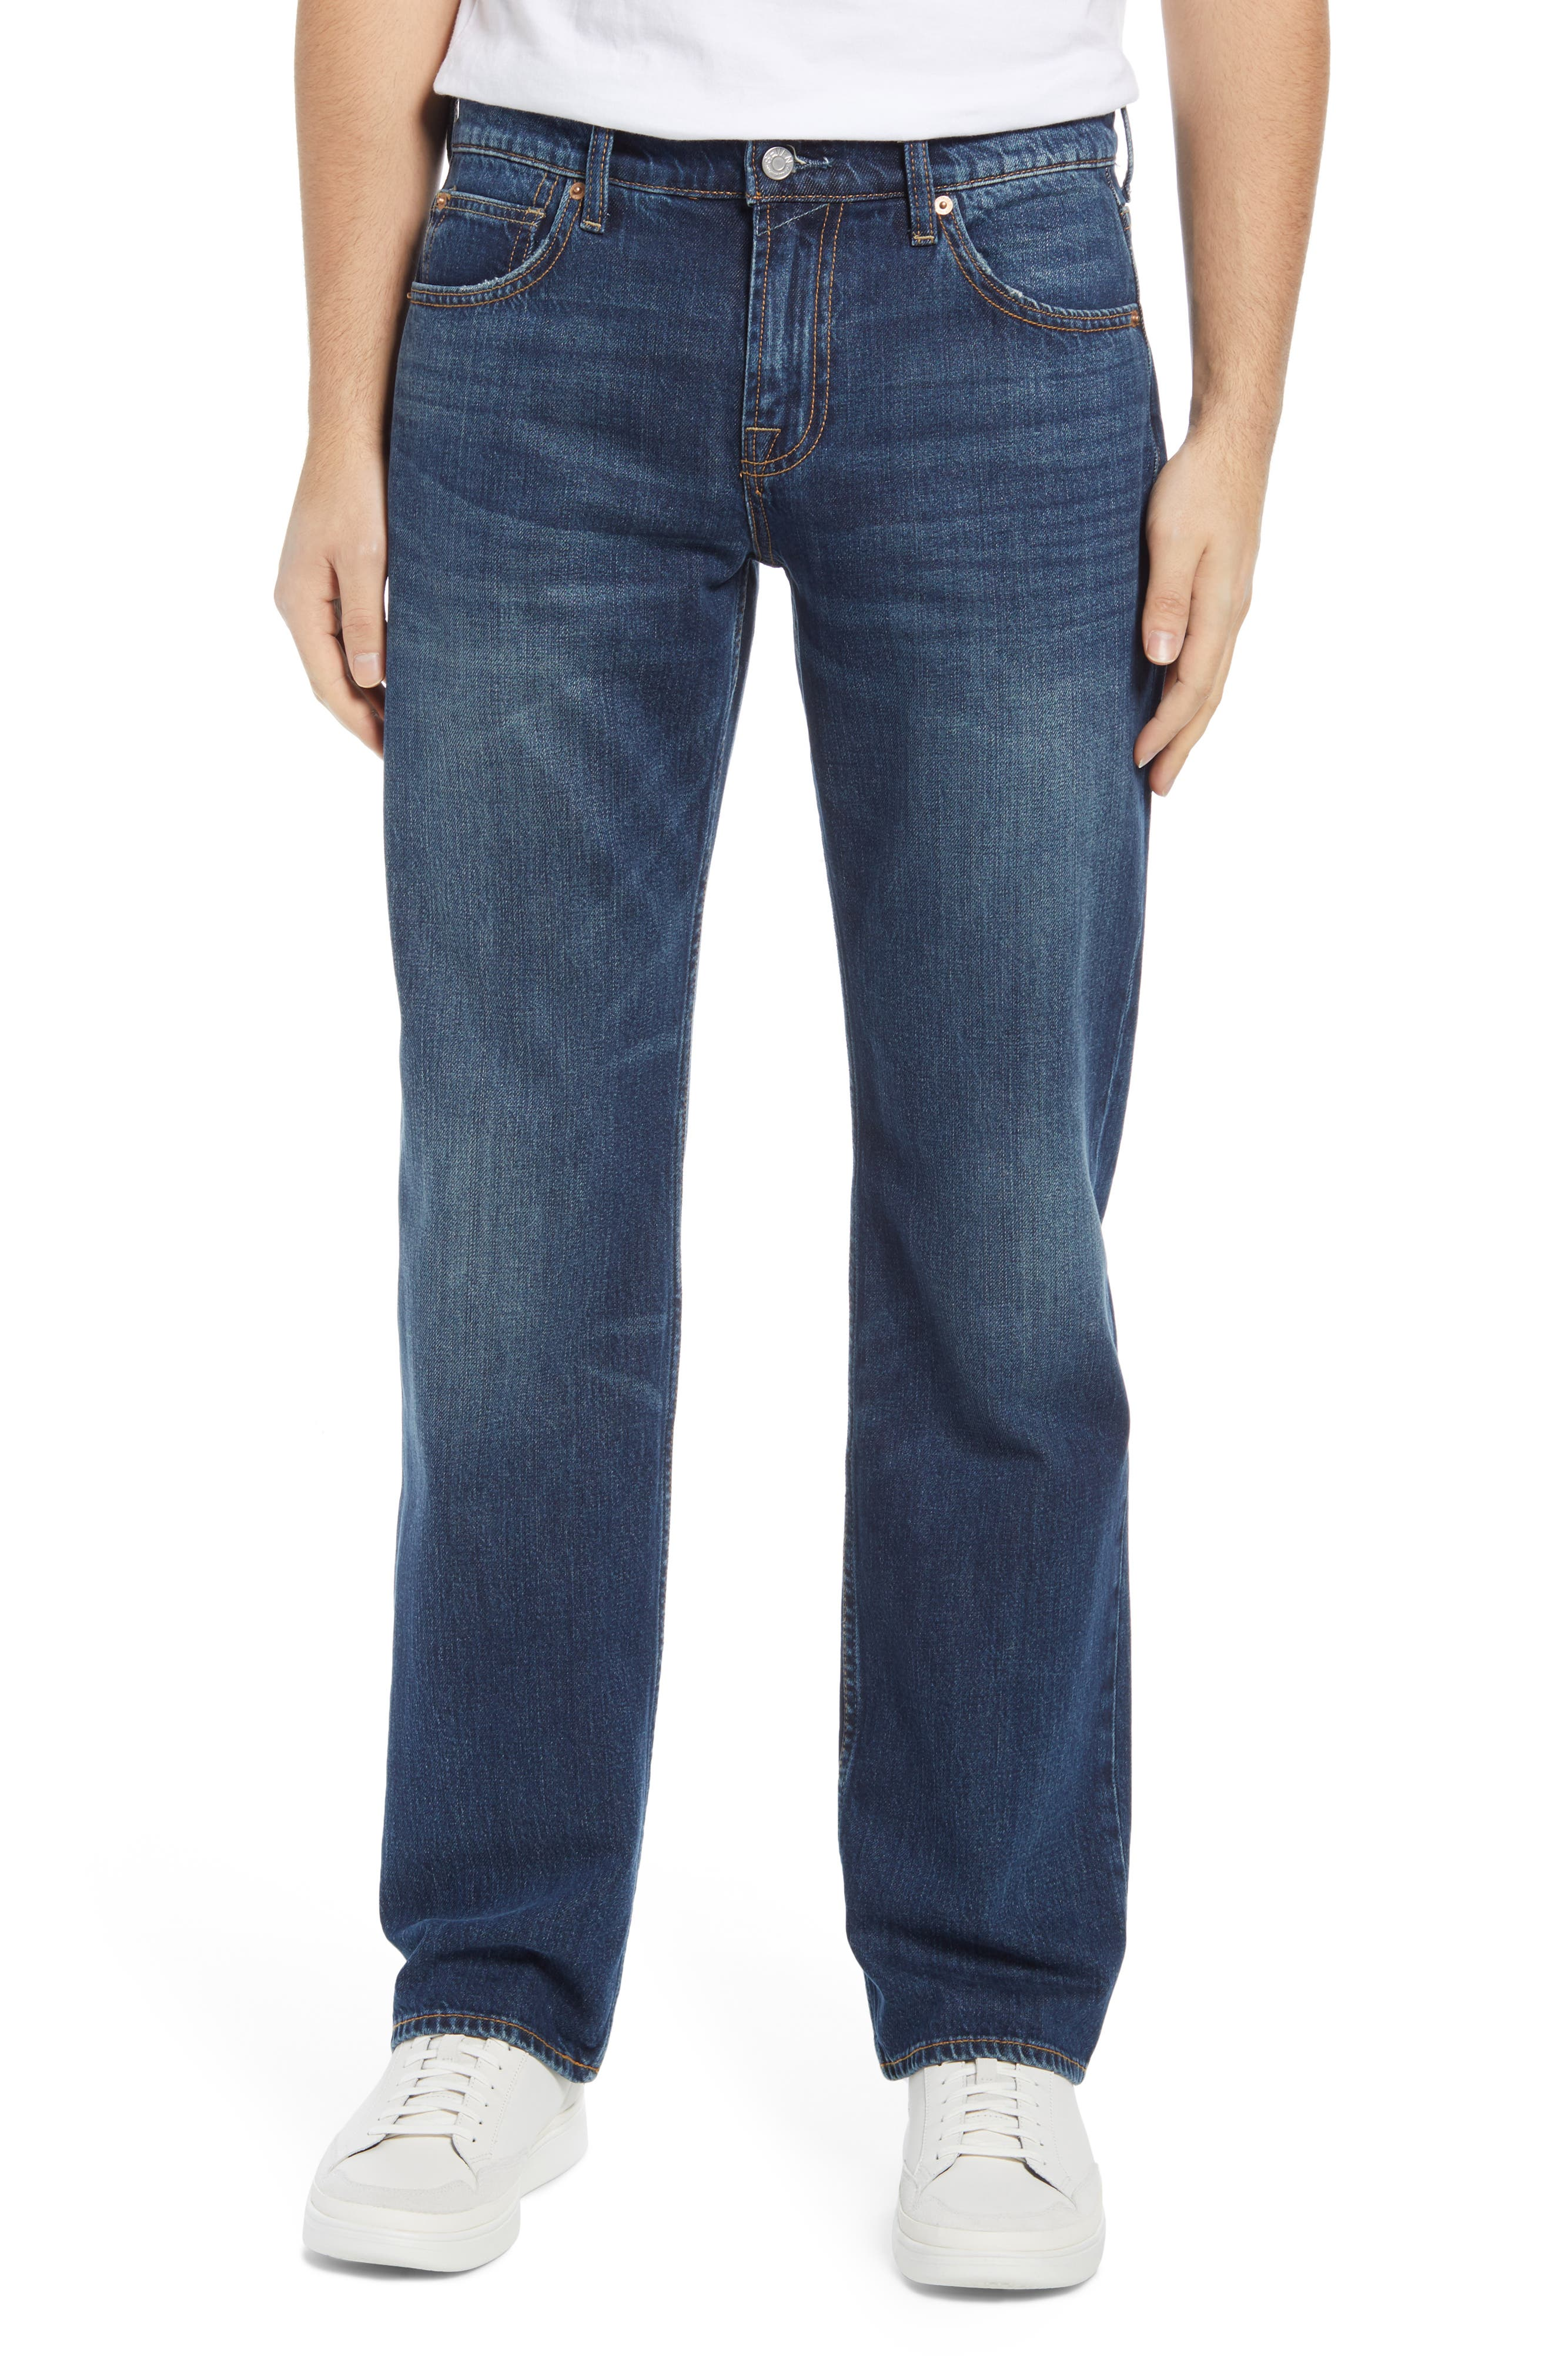 7 For All Mankind Big Girls The Skinny Double Knit Pant